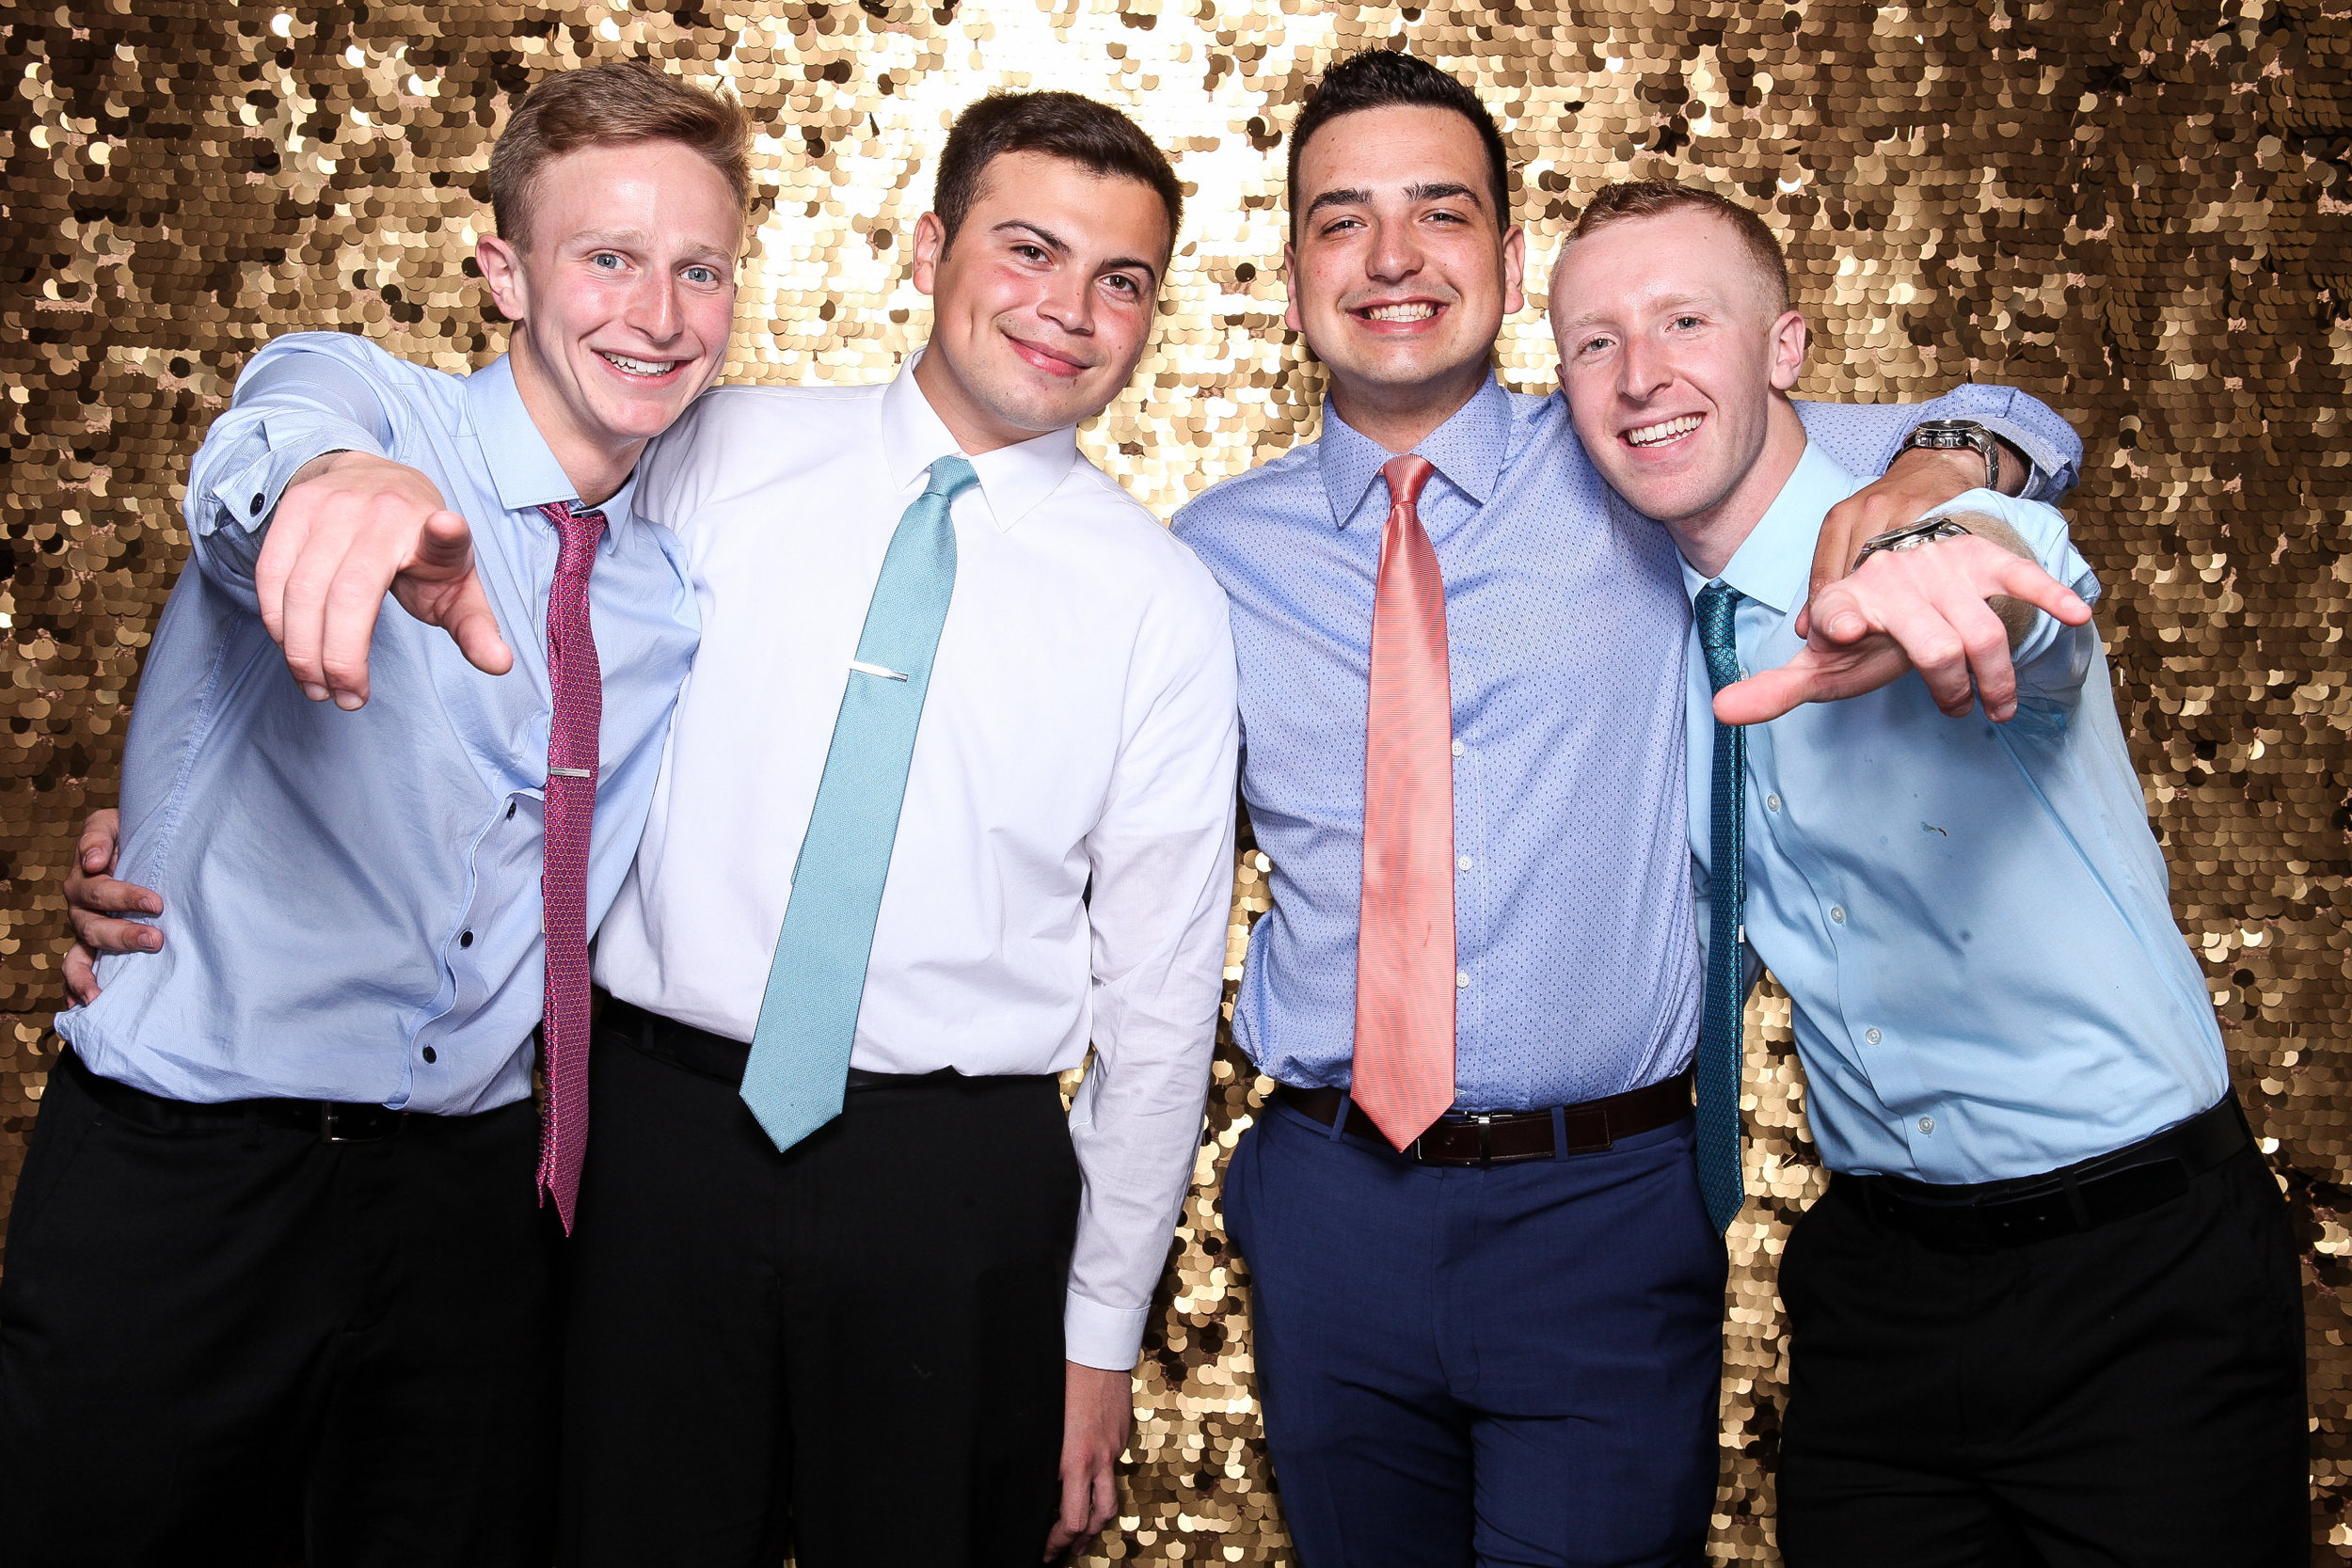 20190503_Adelphi_Senior_Formal-339.jpg